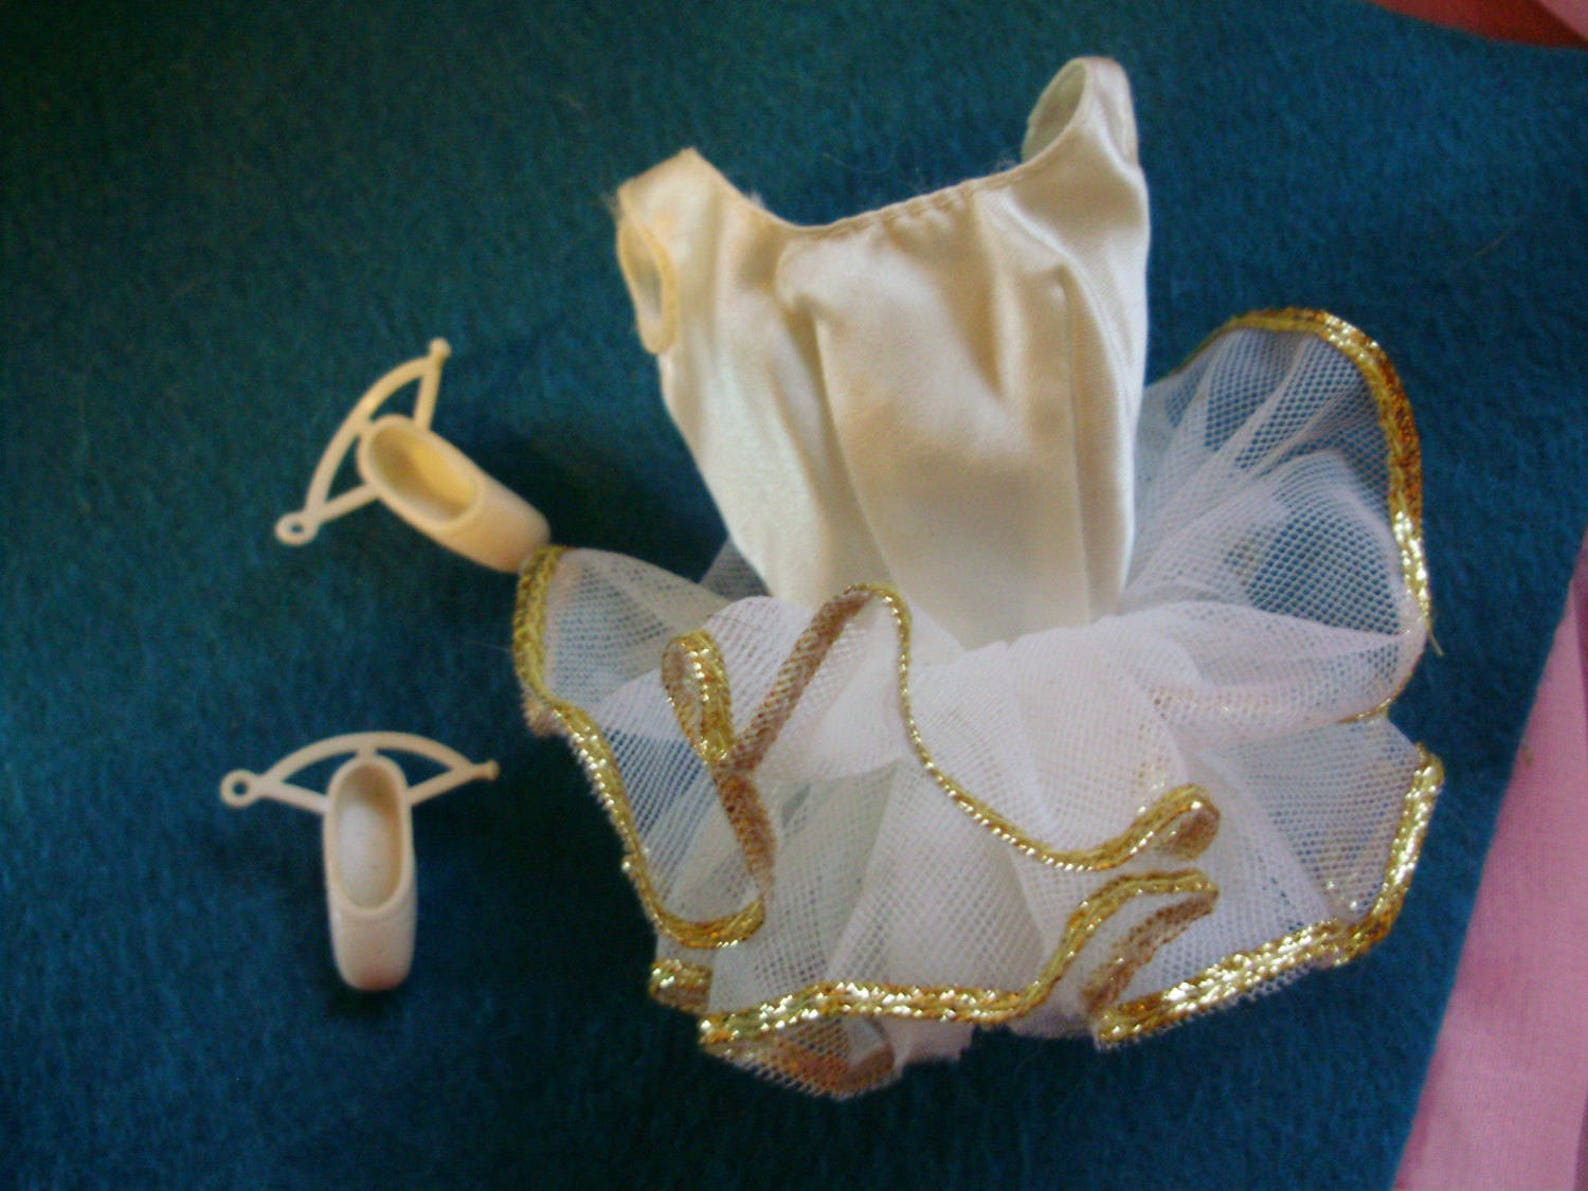 1976 mod barbie *white ballet outfit* #9093 white satin tutu & ankle strap ballerina slippers -vintage squishy shoes